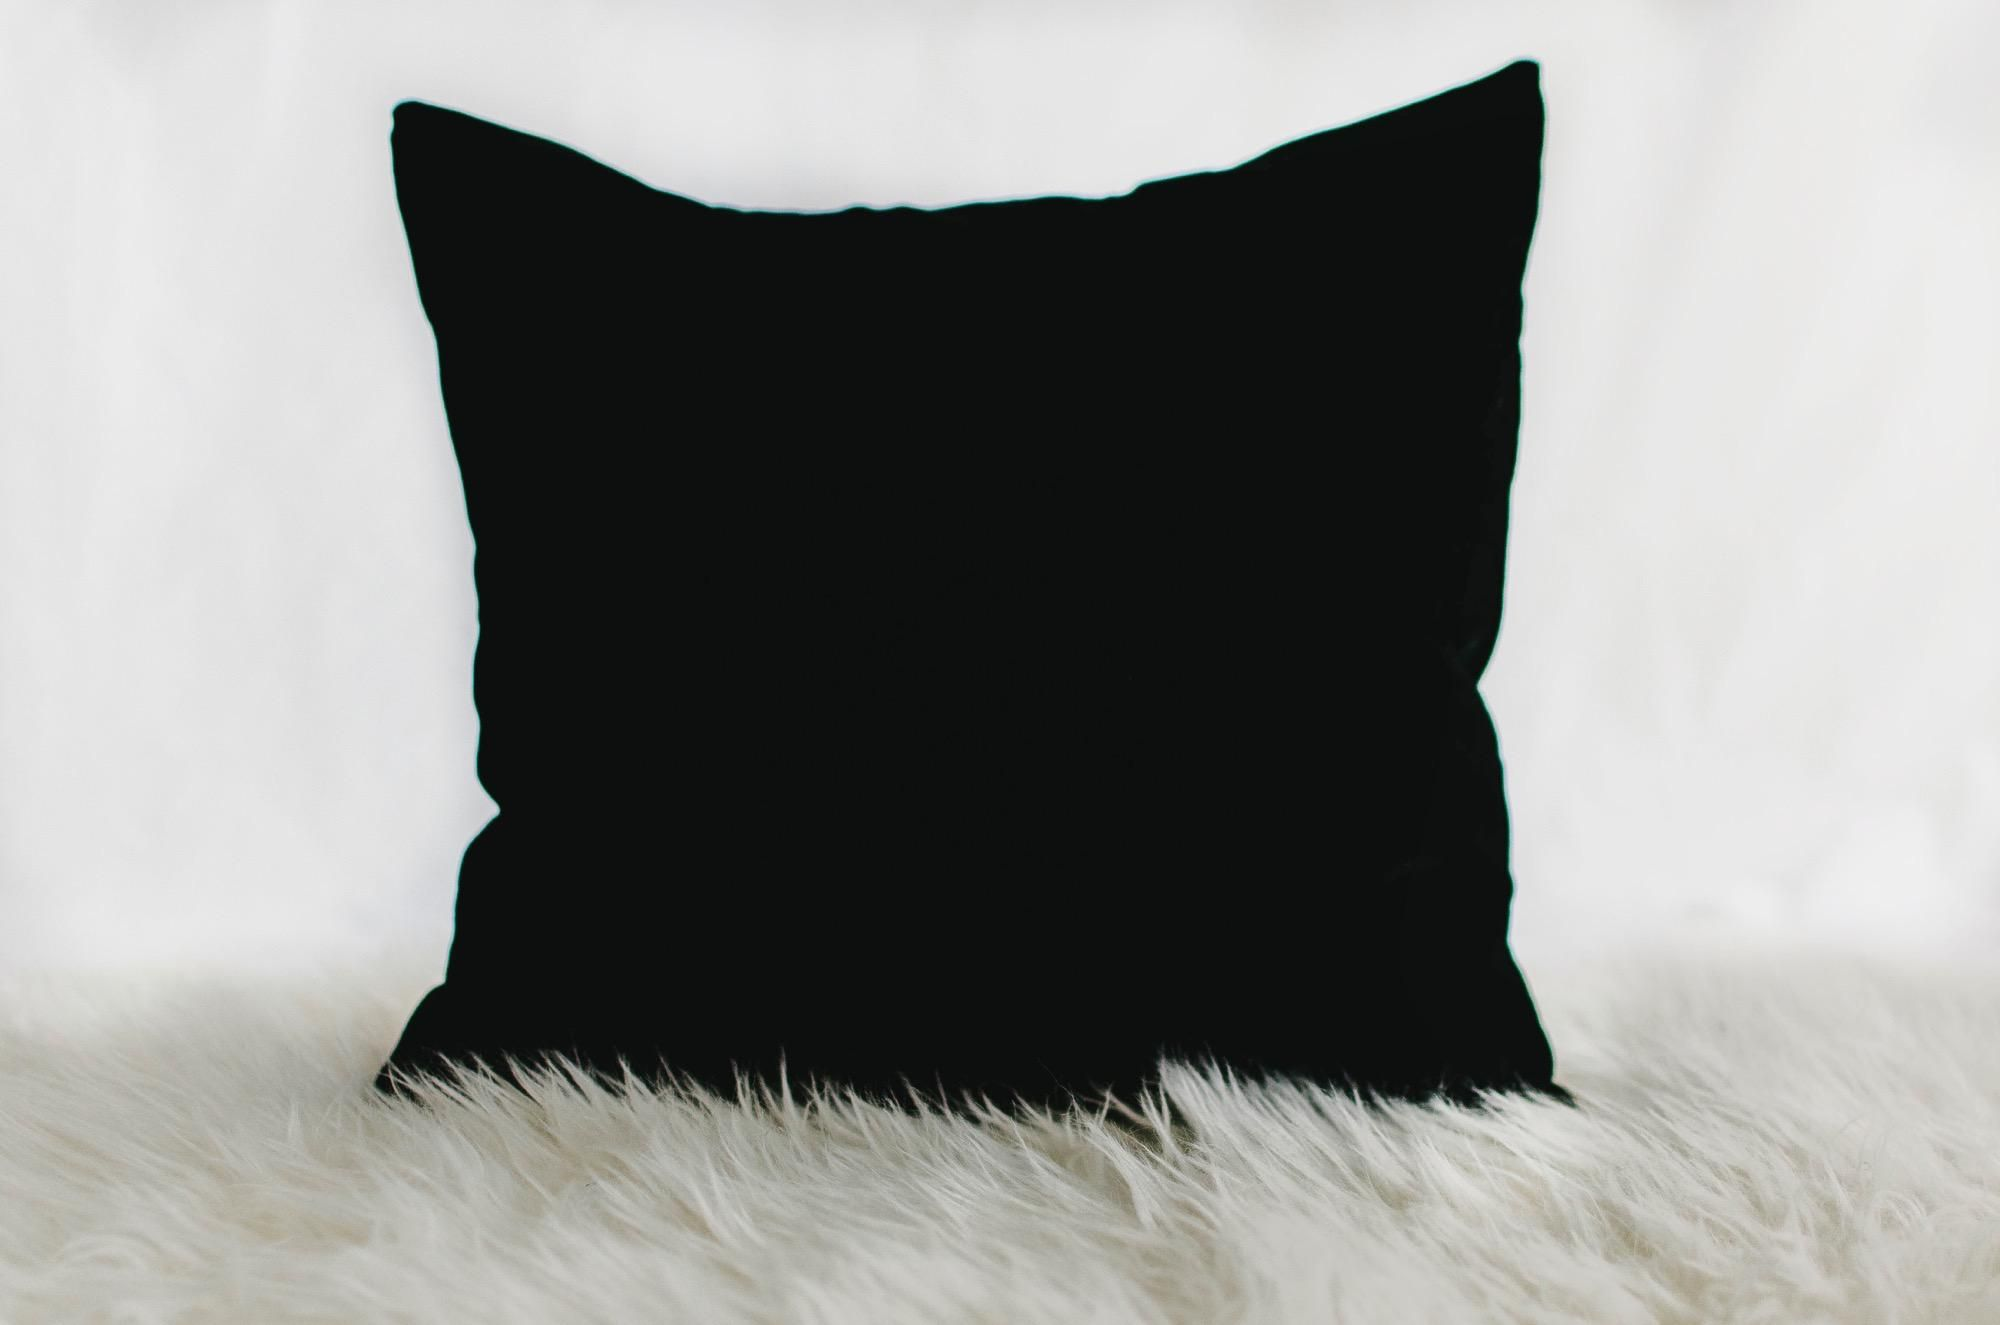 What S More Divine Than The Pure Silk That Caresses Your Skin As Soft As Baby S Breath Yet As Dark As The Pitch Black Night Sky Not Pillows Pillow Shop Black